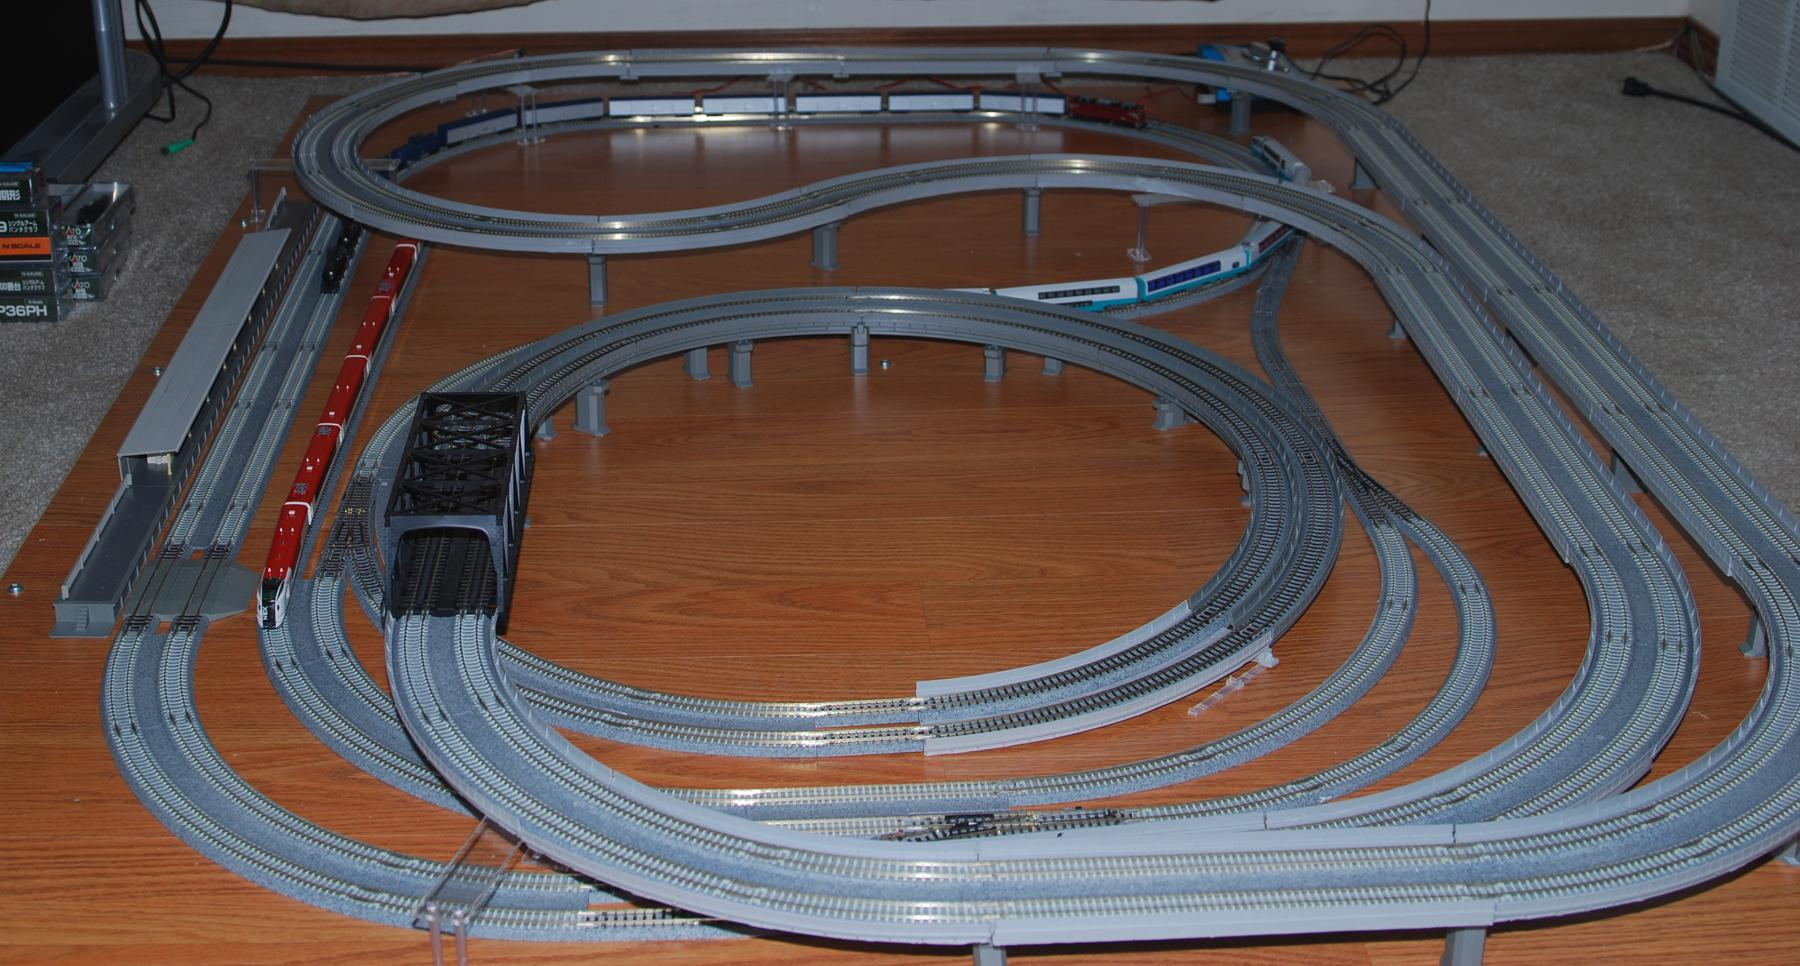 Kato Track Wiring Library N Scale Published 12 Feb 2015 At 1800 966 In